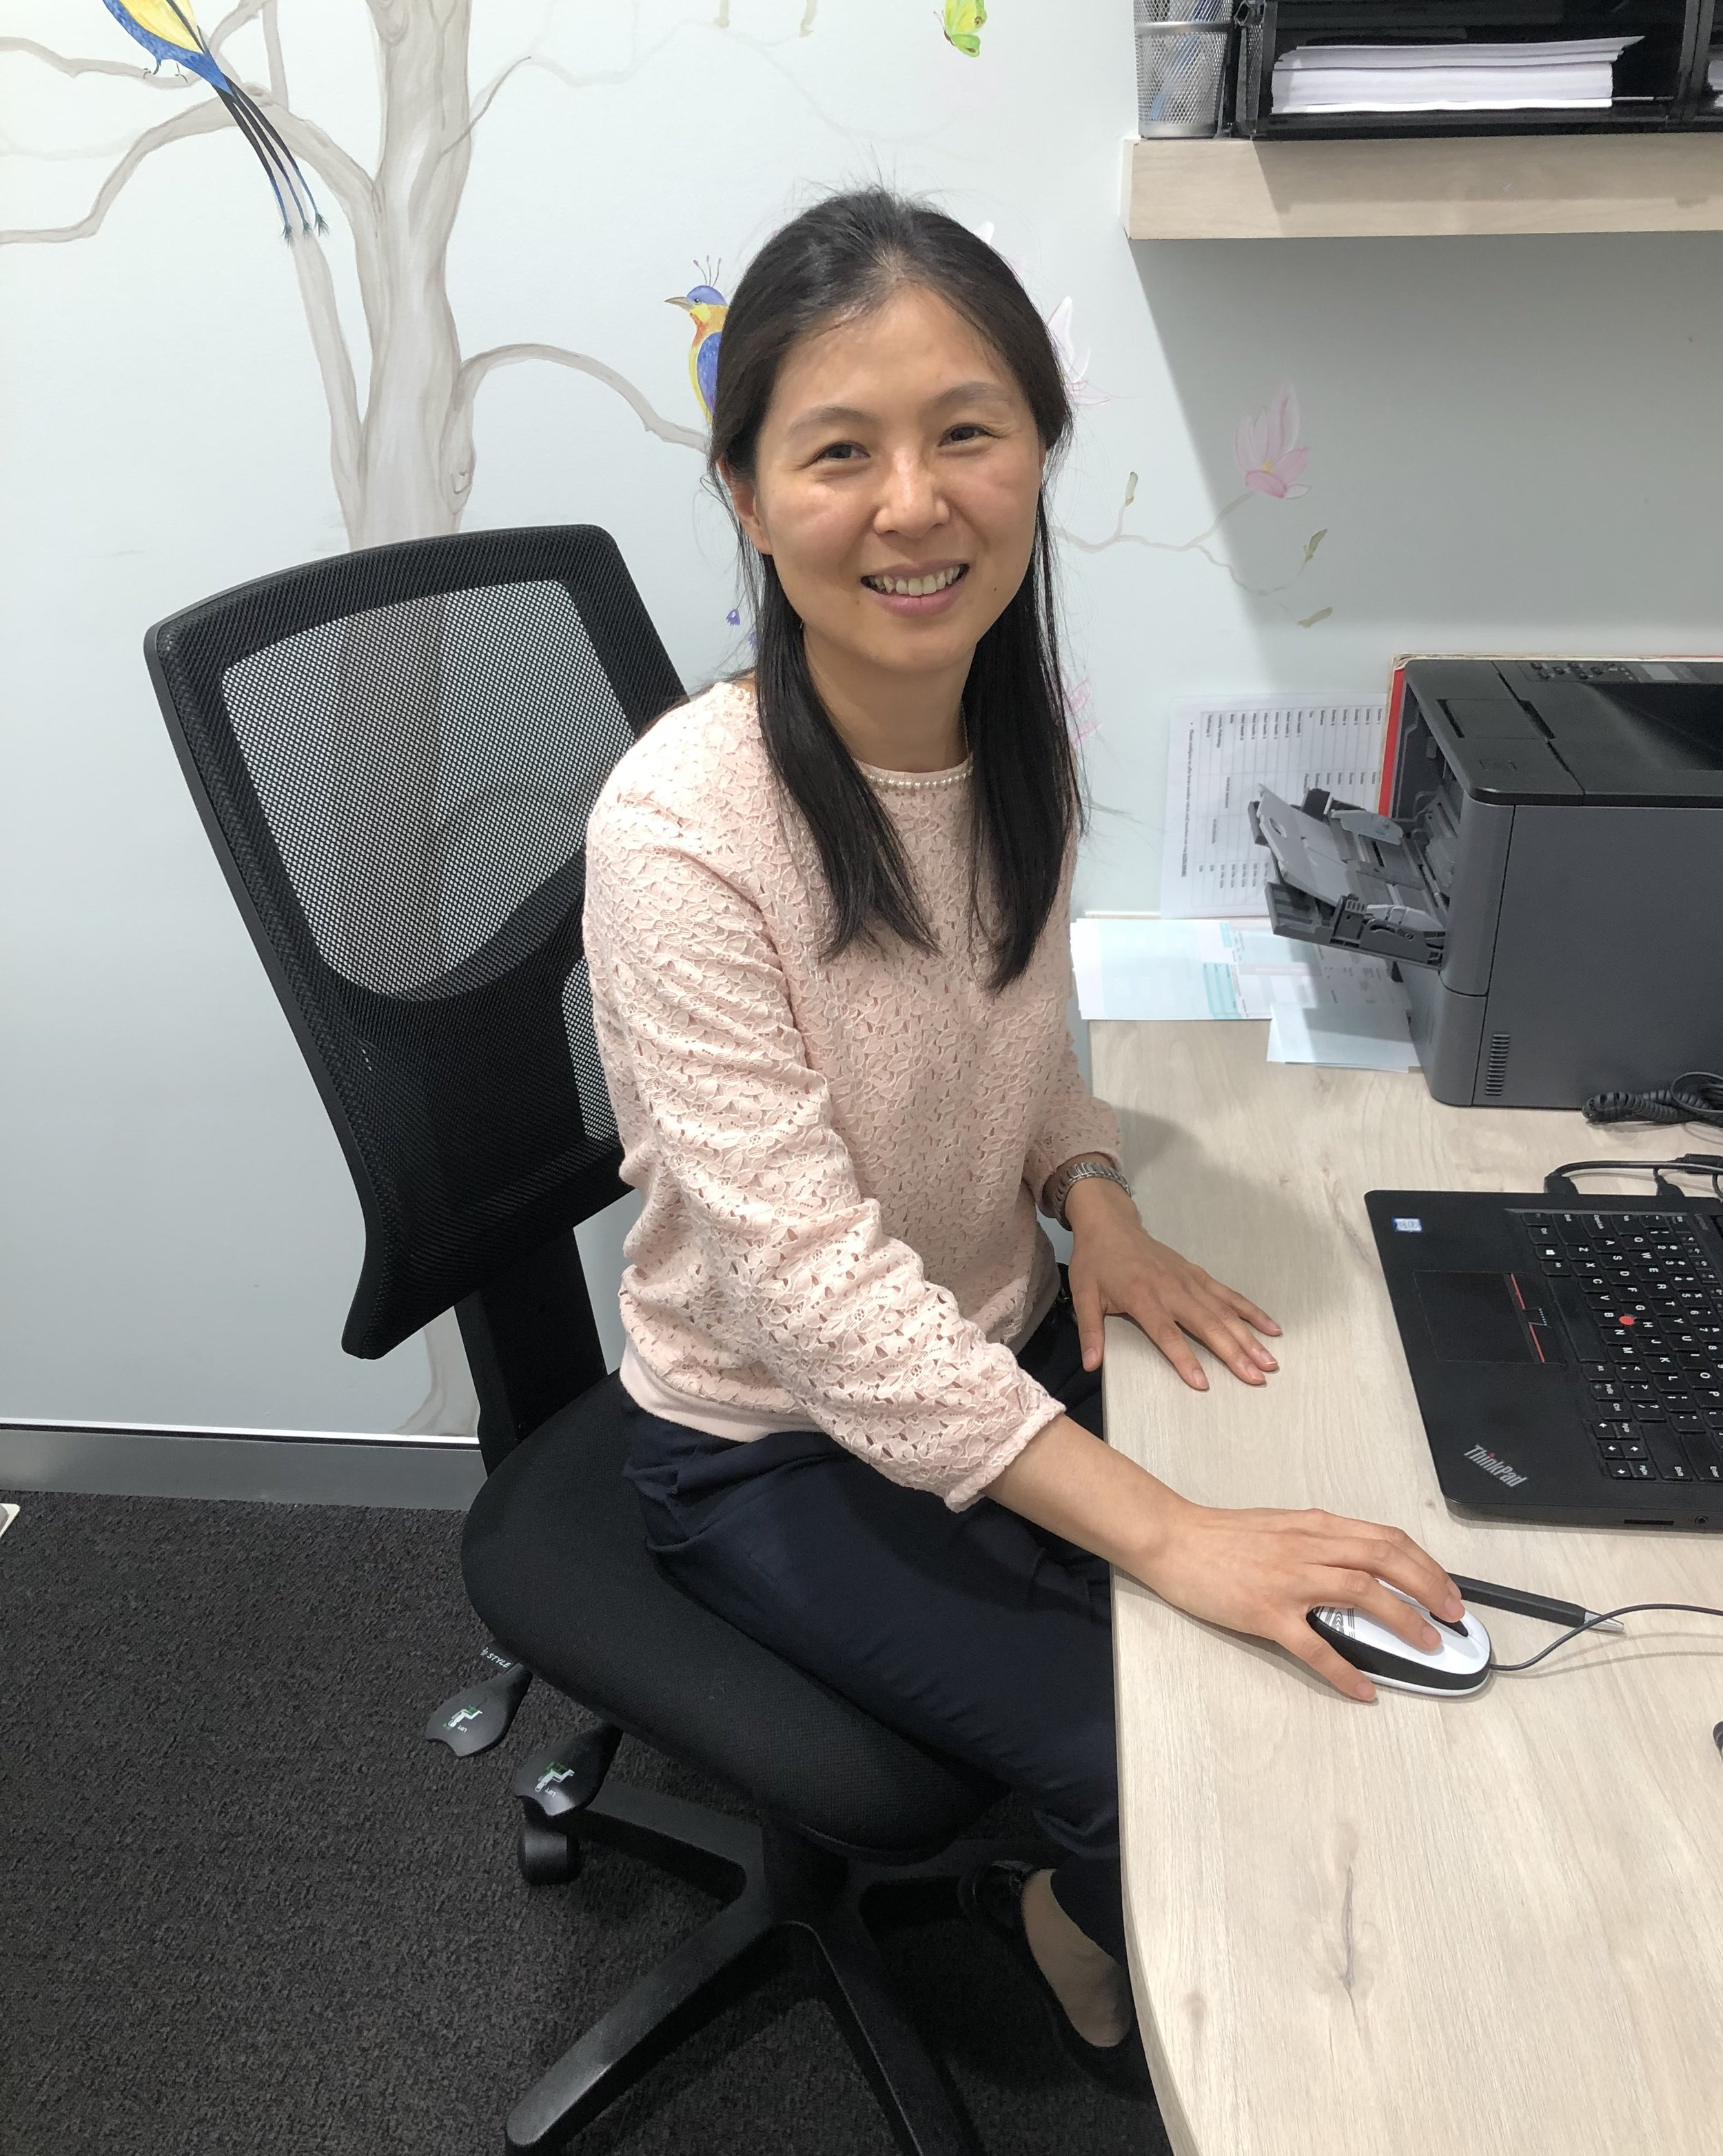 Dr Aurora Yu - M.B.B.S (UNSW)Dr Yu graduated from the University of New South Wales and has postgraduate qualifications including the Diploma of Child Health (University of Sydney) and Certificate in Sexual and Reproductive Health (Family Planning Australia). She is a Fellow of the Royal College of General Practitioners in Australia. Dr Yu loves the variety in General Practice and she has been with us since 2010. In 2014 Dr Yu worked full time and also undertook further study in Mental Health and Dermatology. In 2015 Dr Yu is completed her second year of study in Mental Health.